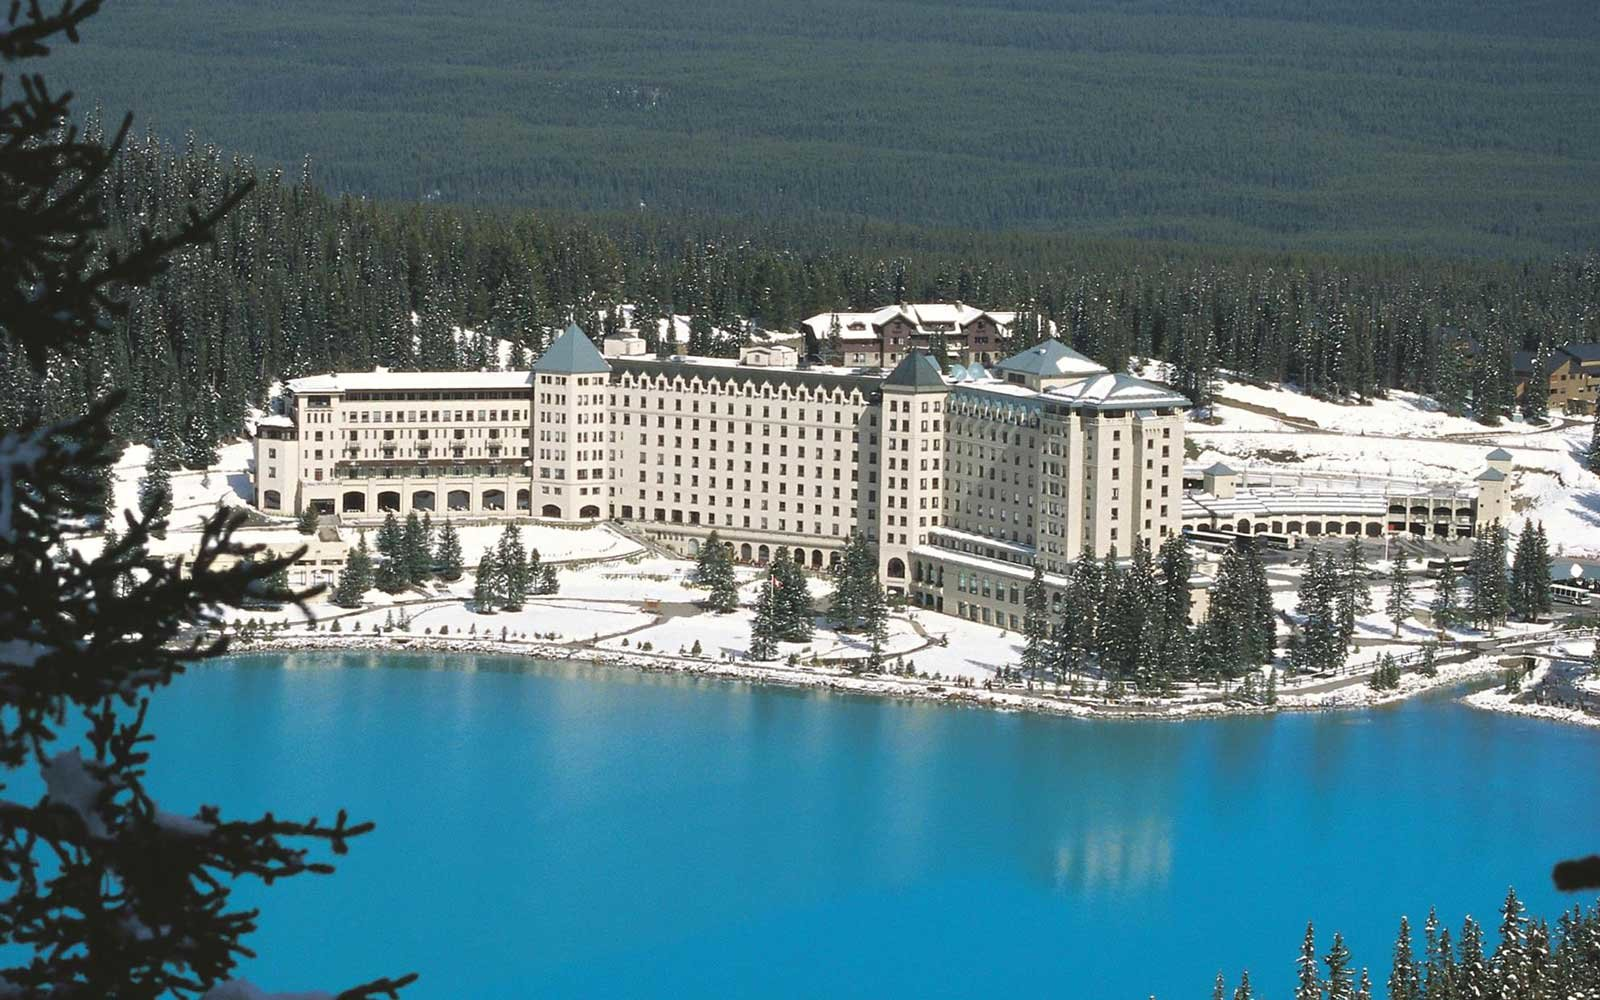 8. Fairmont Chateau, Lake Louise, Alberta